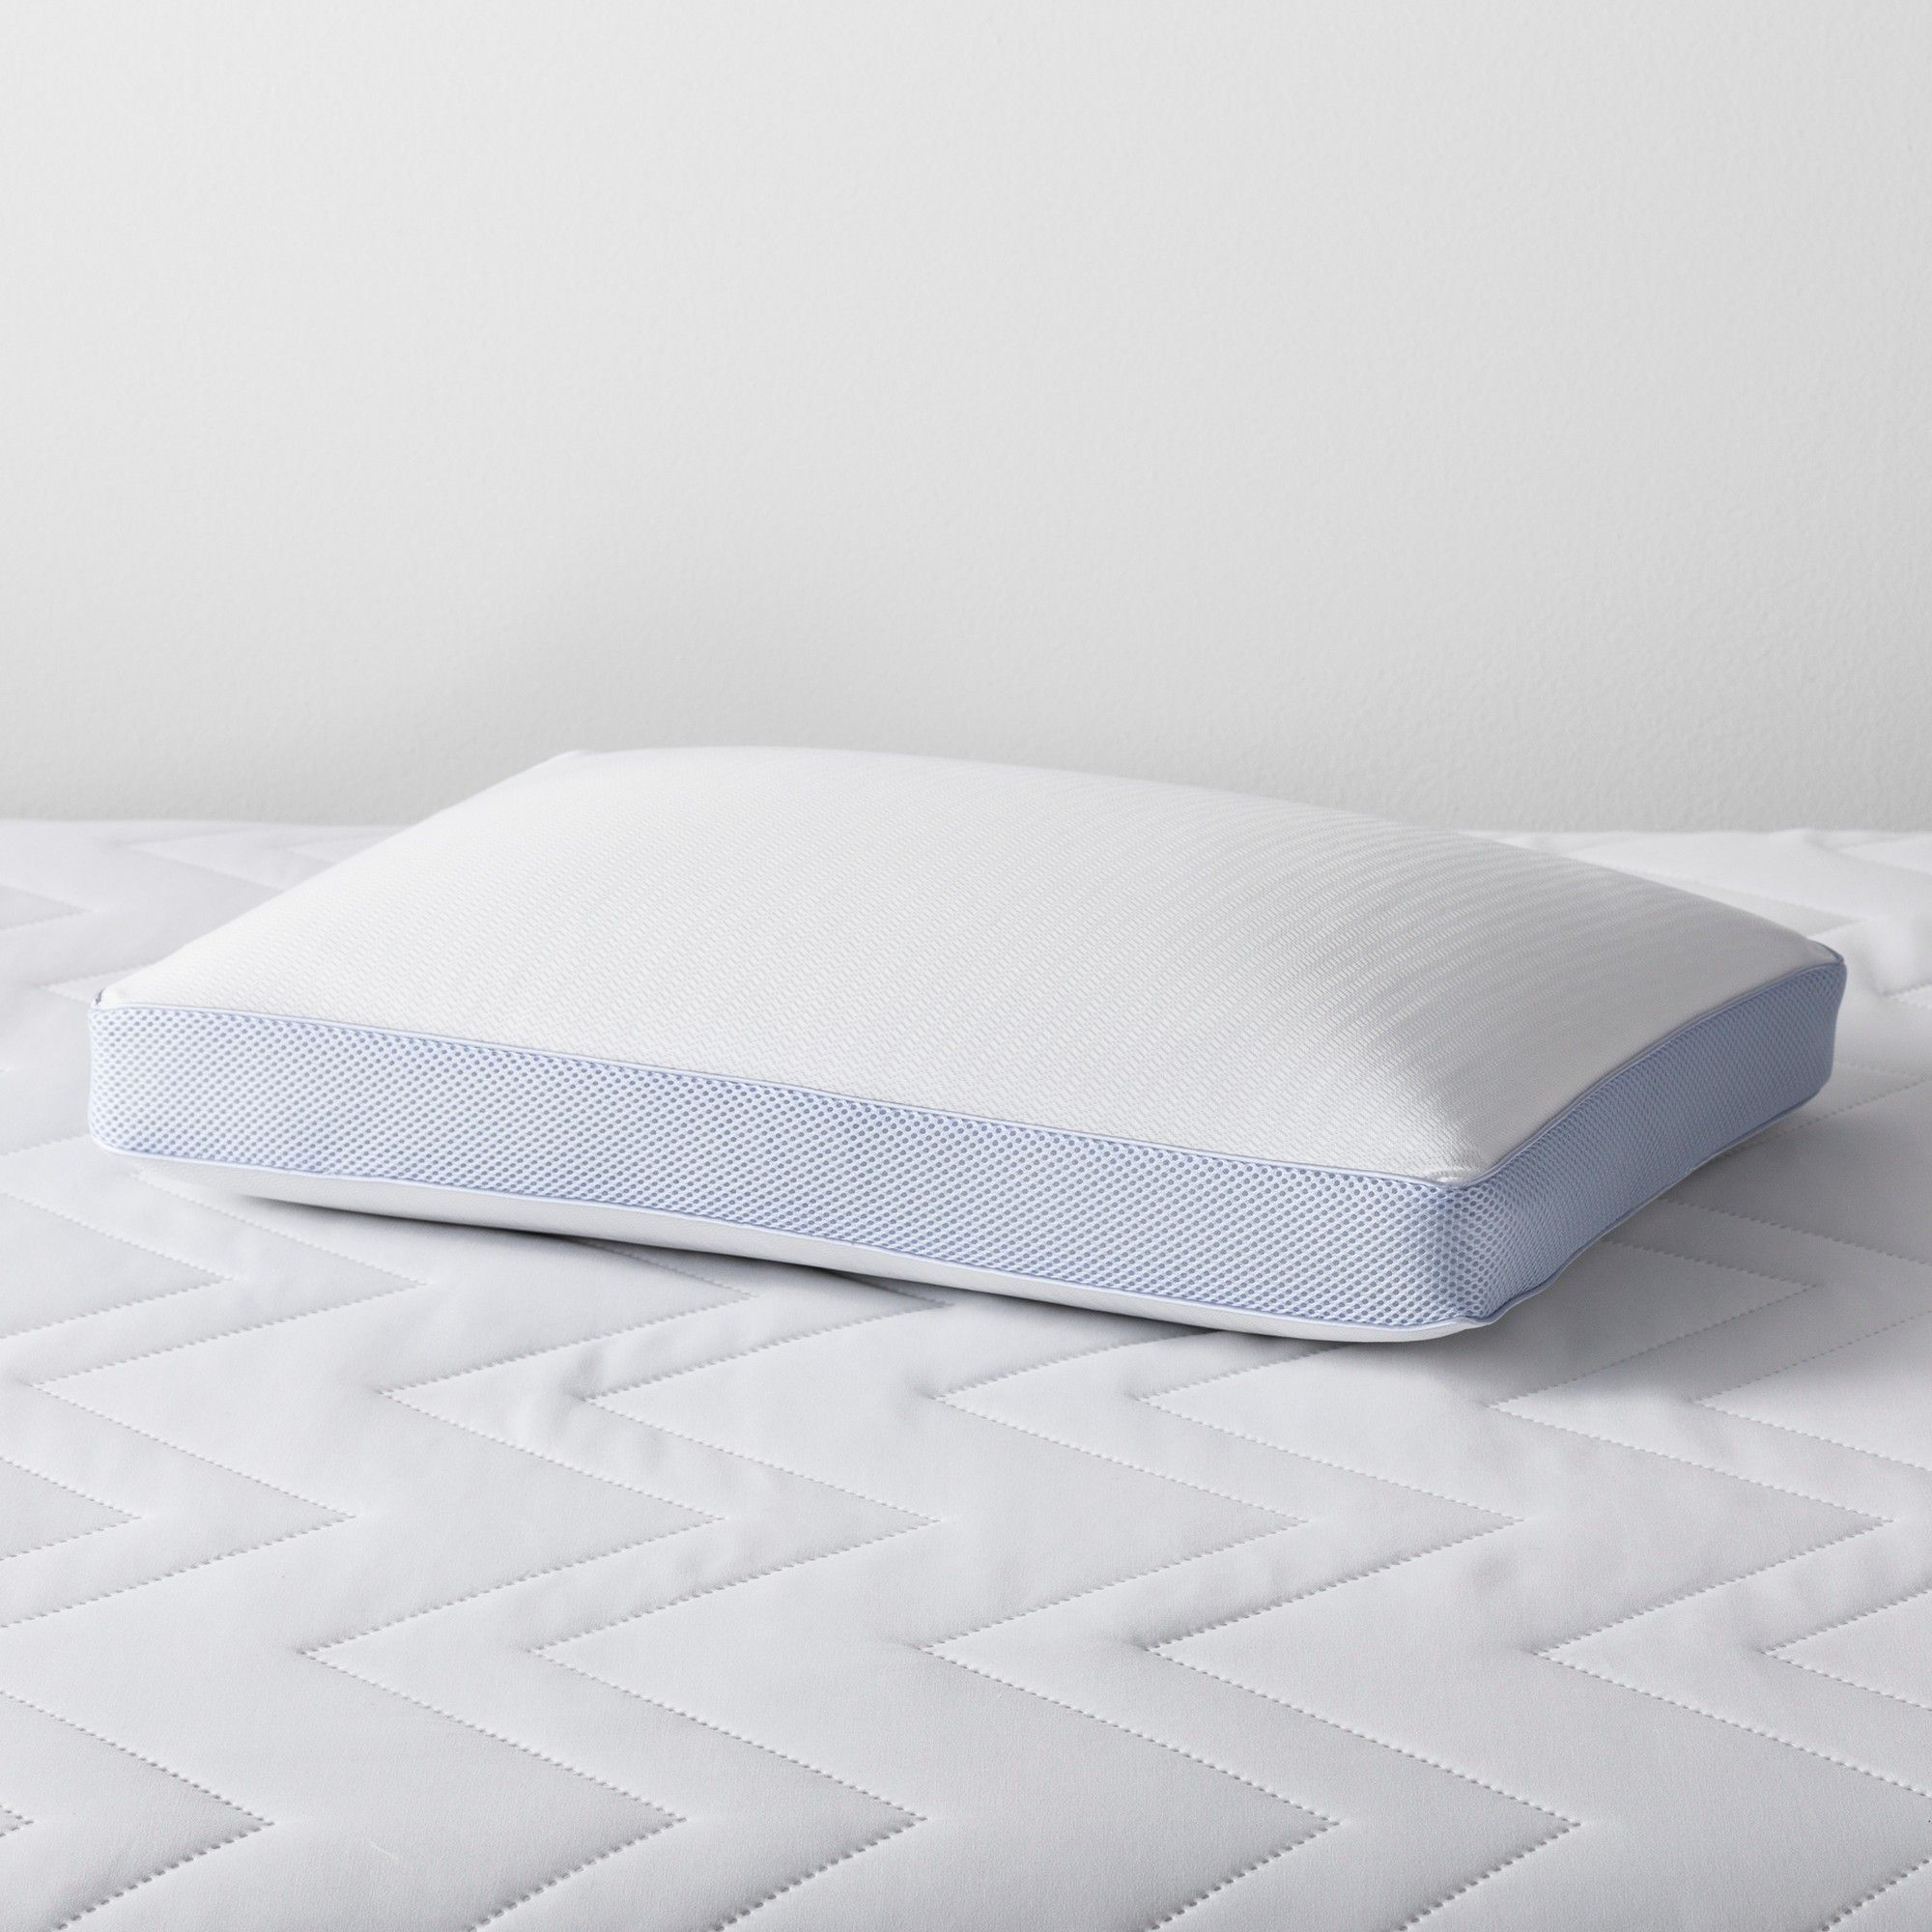 Cooling Memory Foam Pillow Standard Queen Made By Design Blue